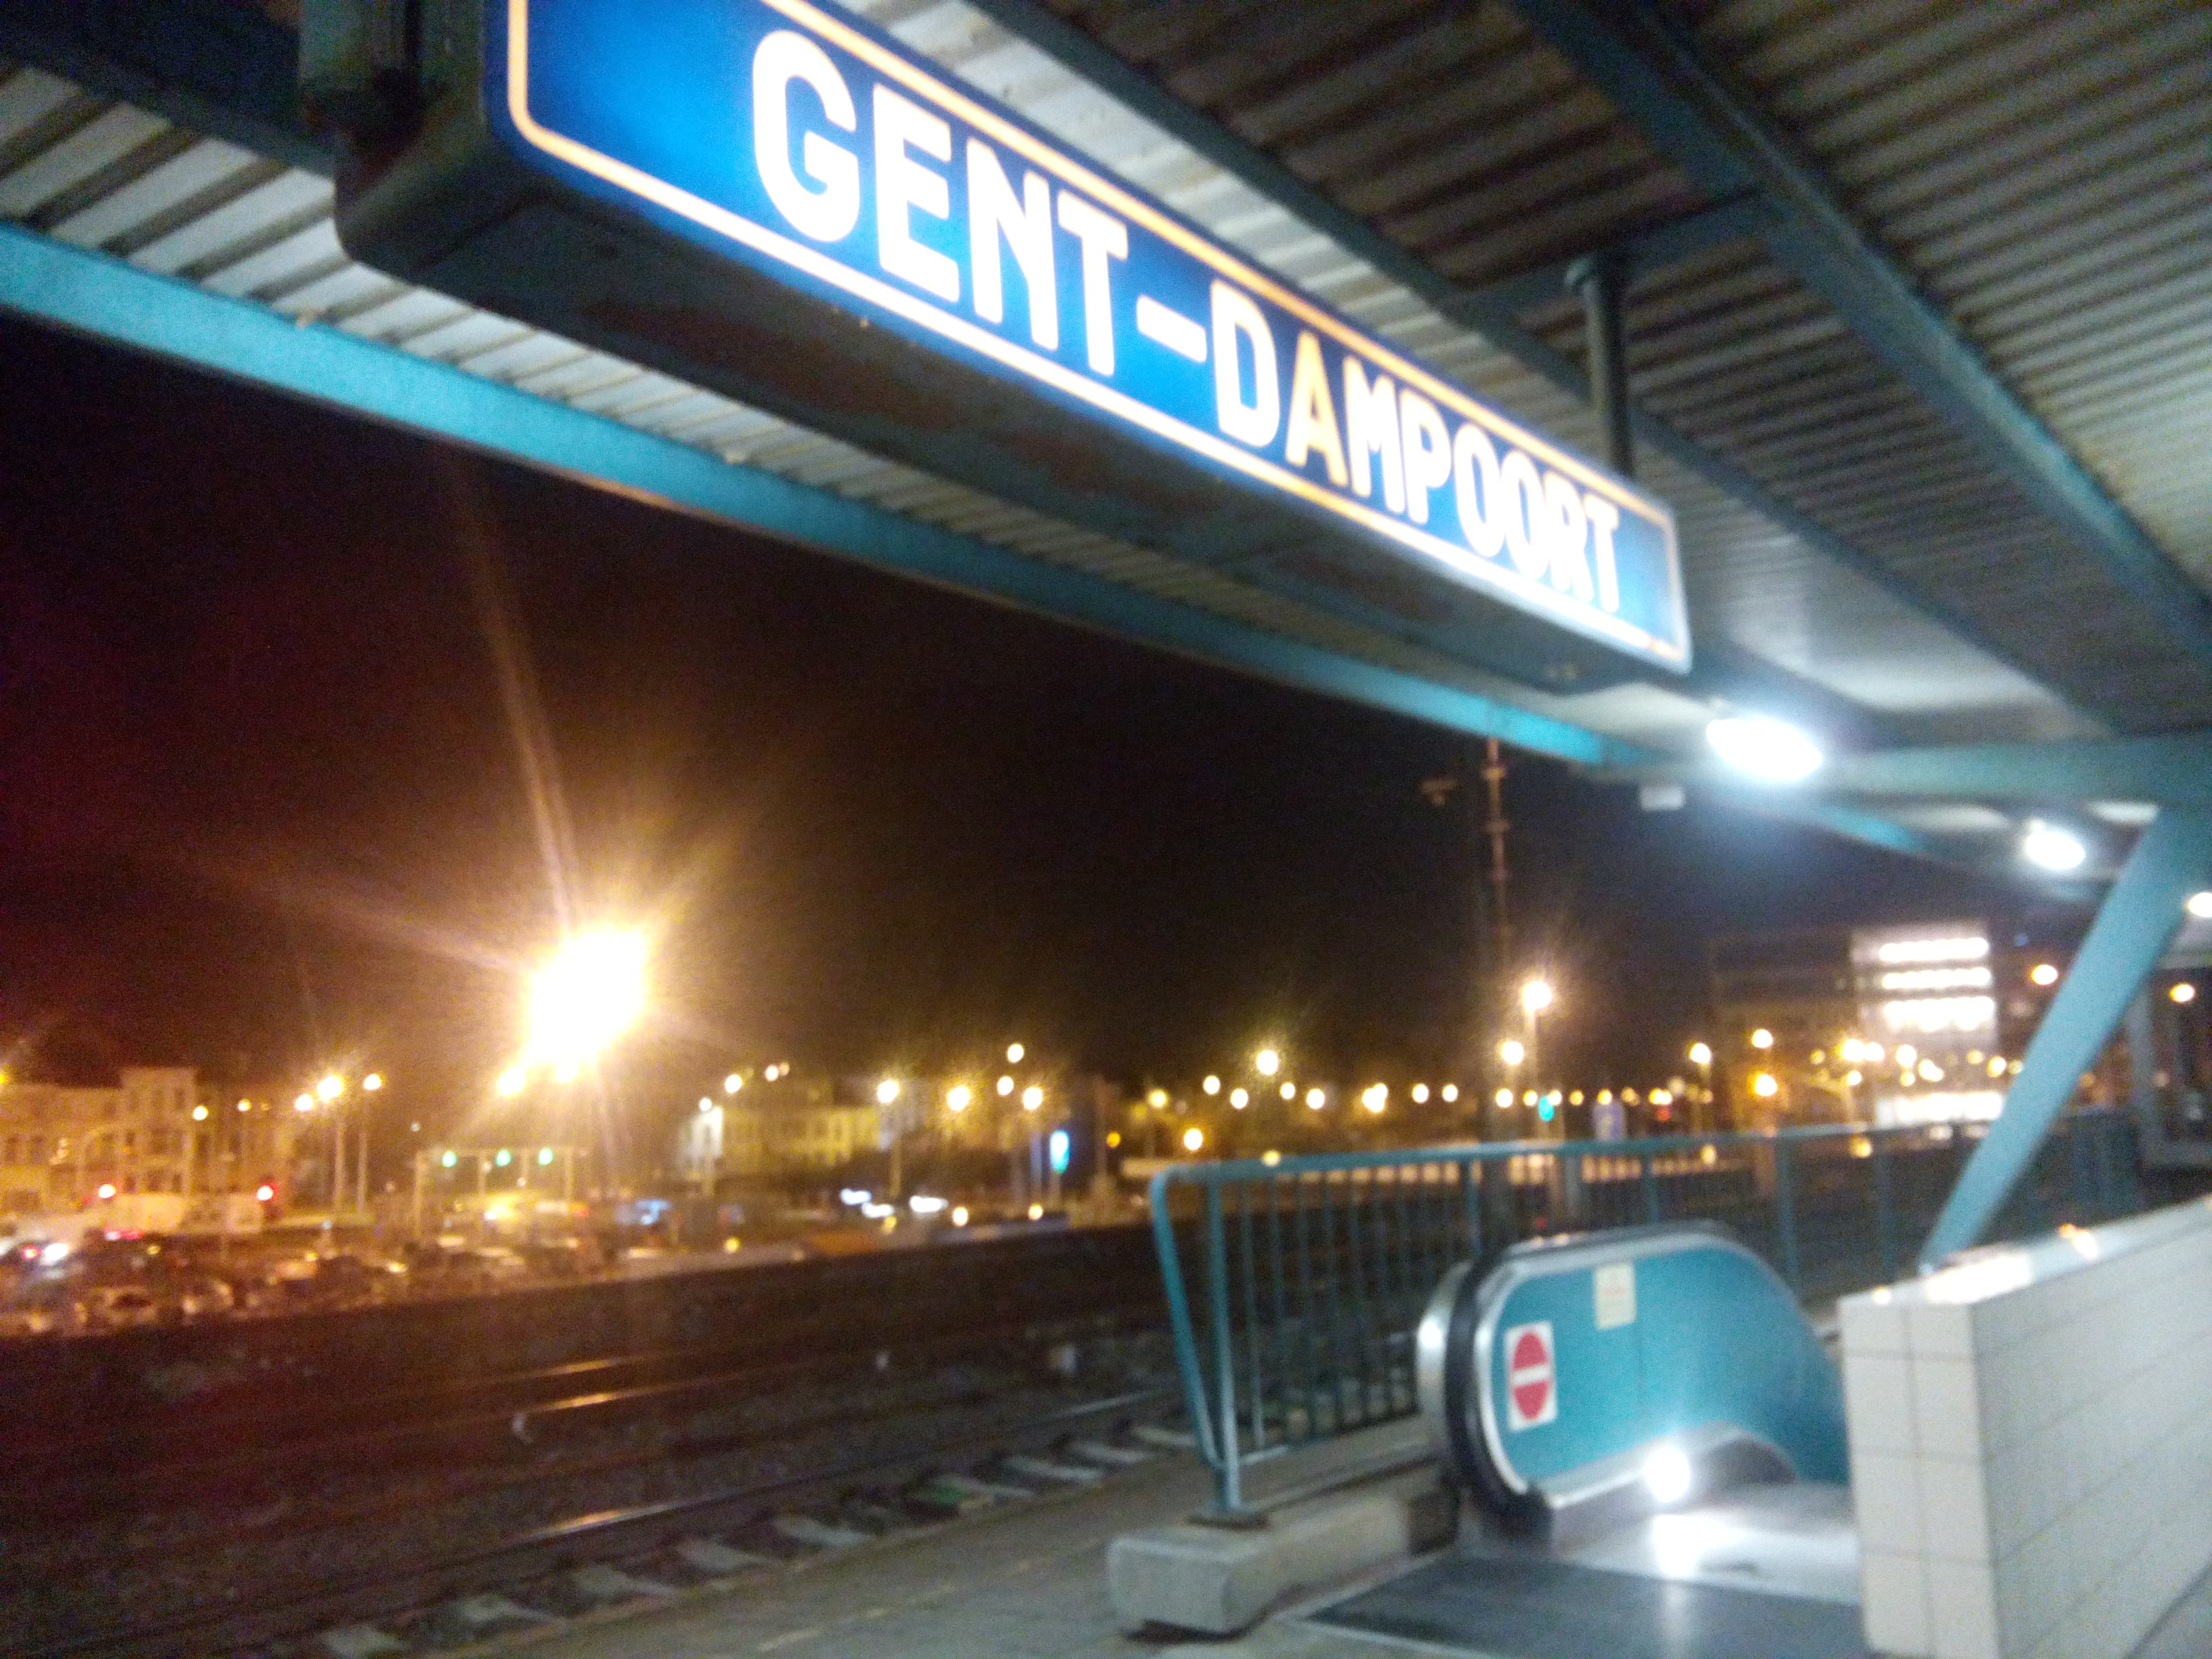 A poorly lit train station sign reading Ghent-Dampoort